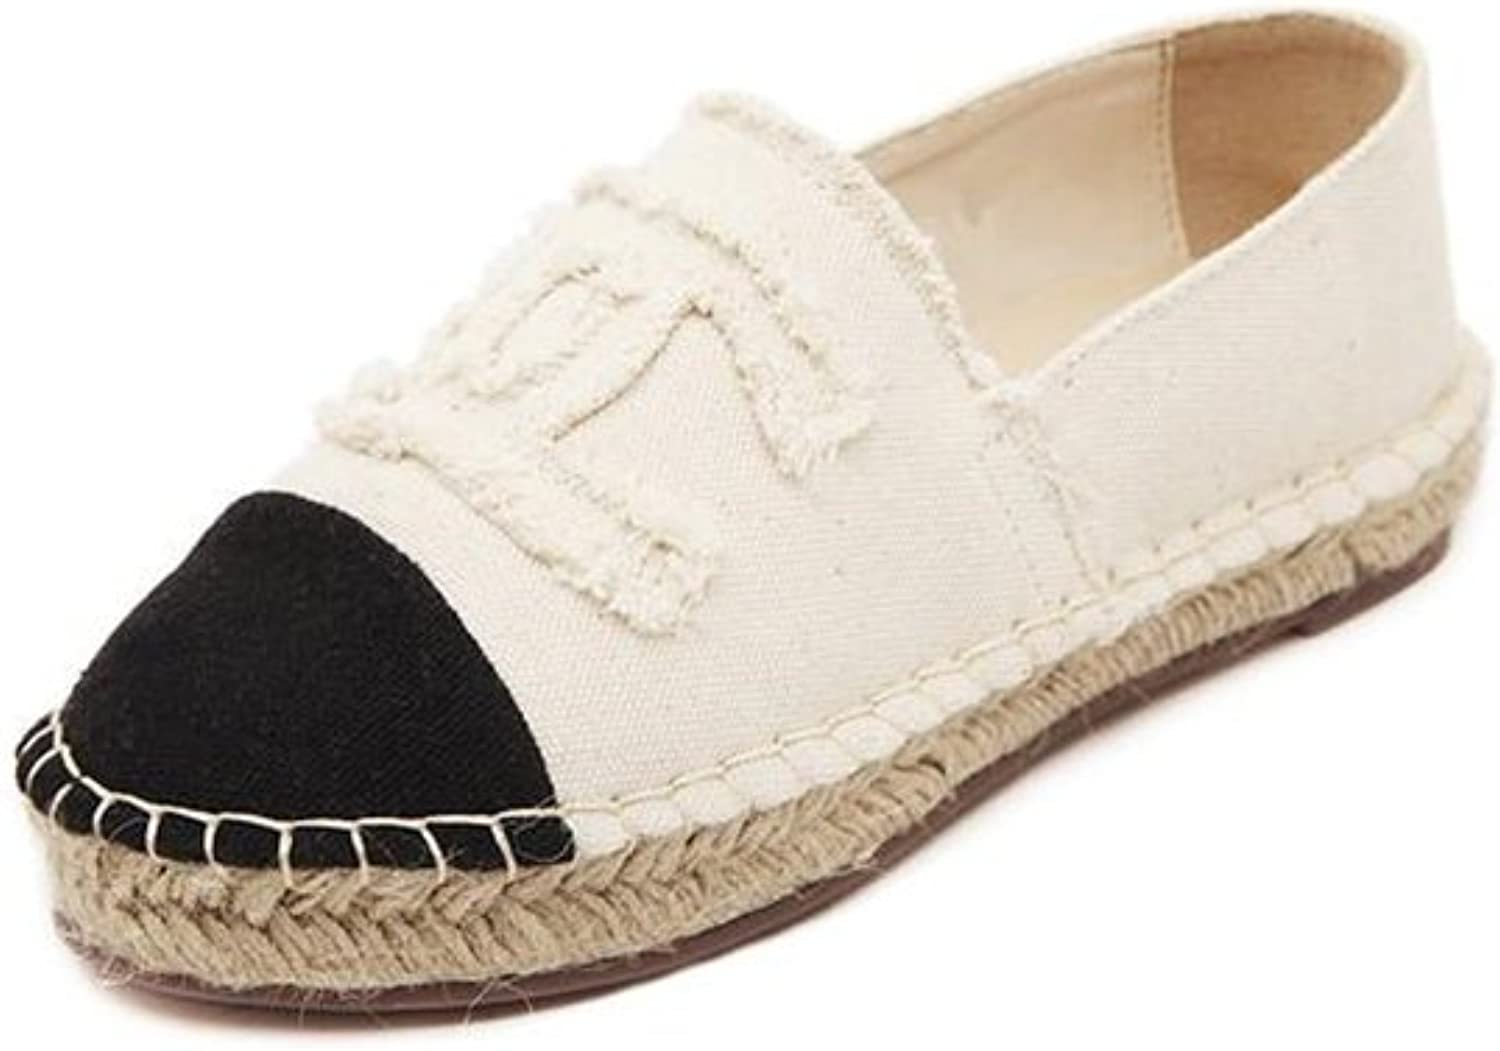 Slip-On Round Toe Fashion Women Luxury Flats shoes Canvas Espadrilles Casual Ladies Loafers